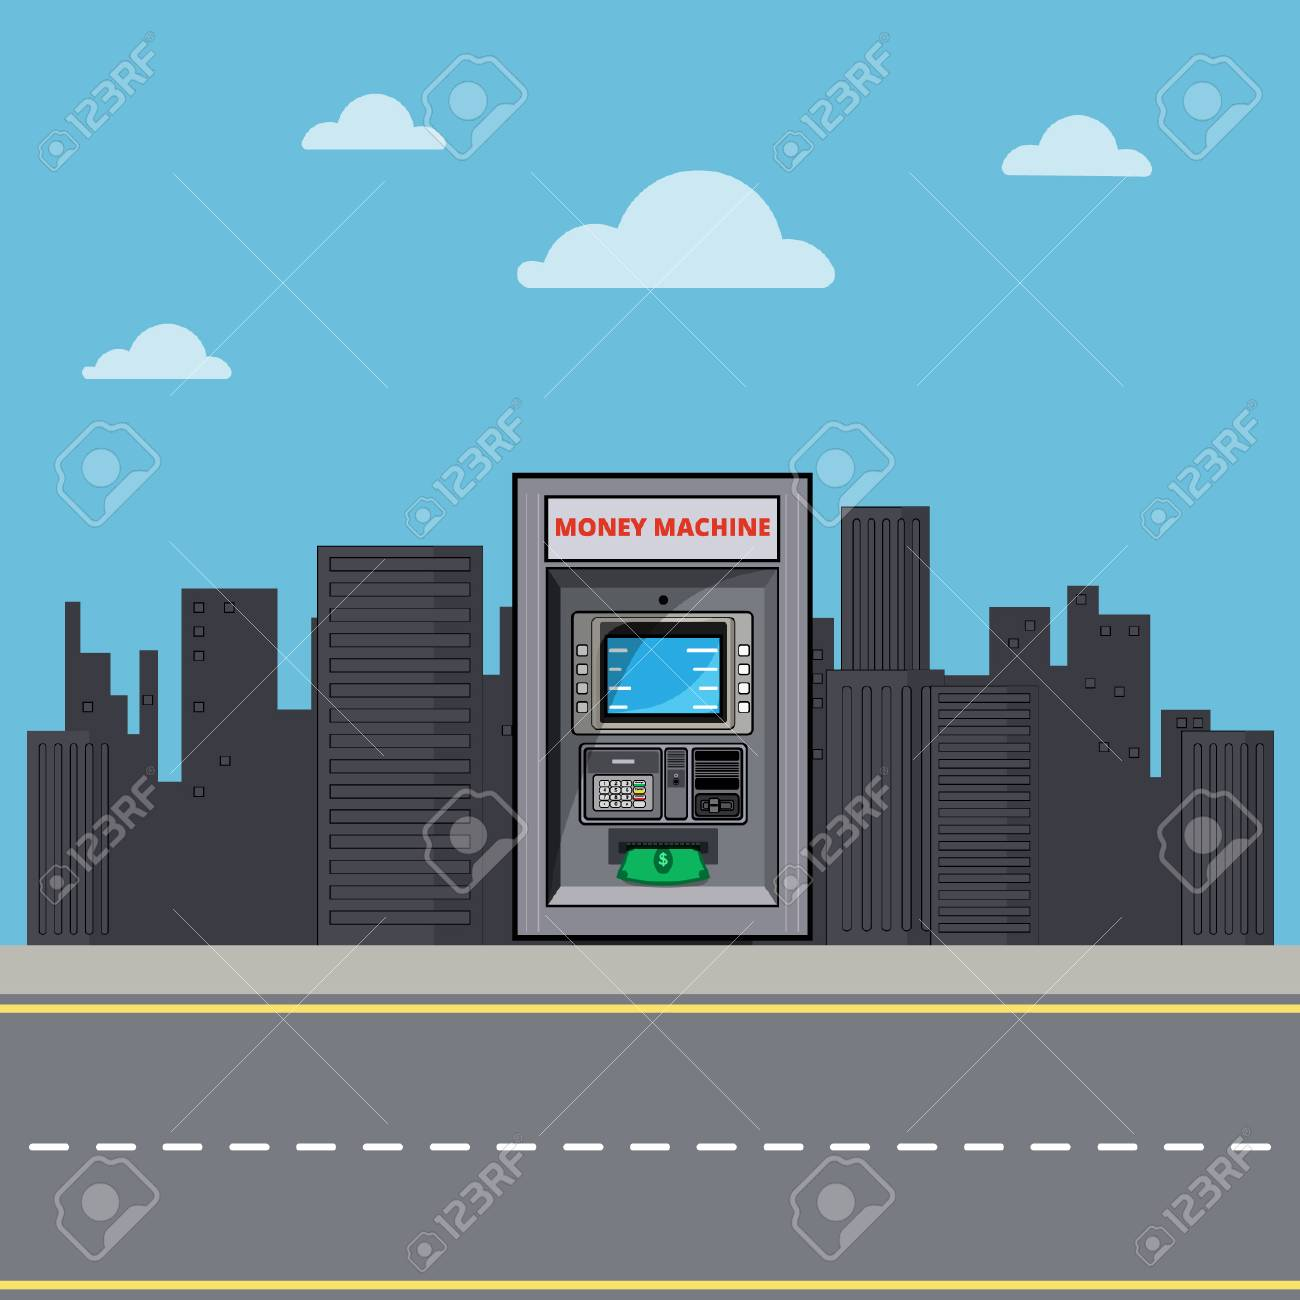 ATM in the City - 110619521